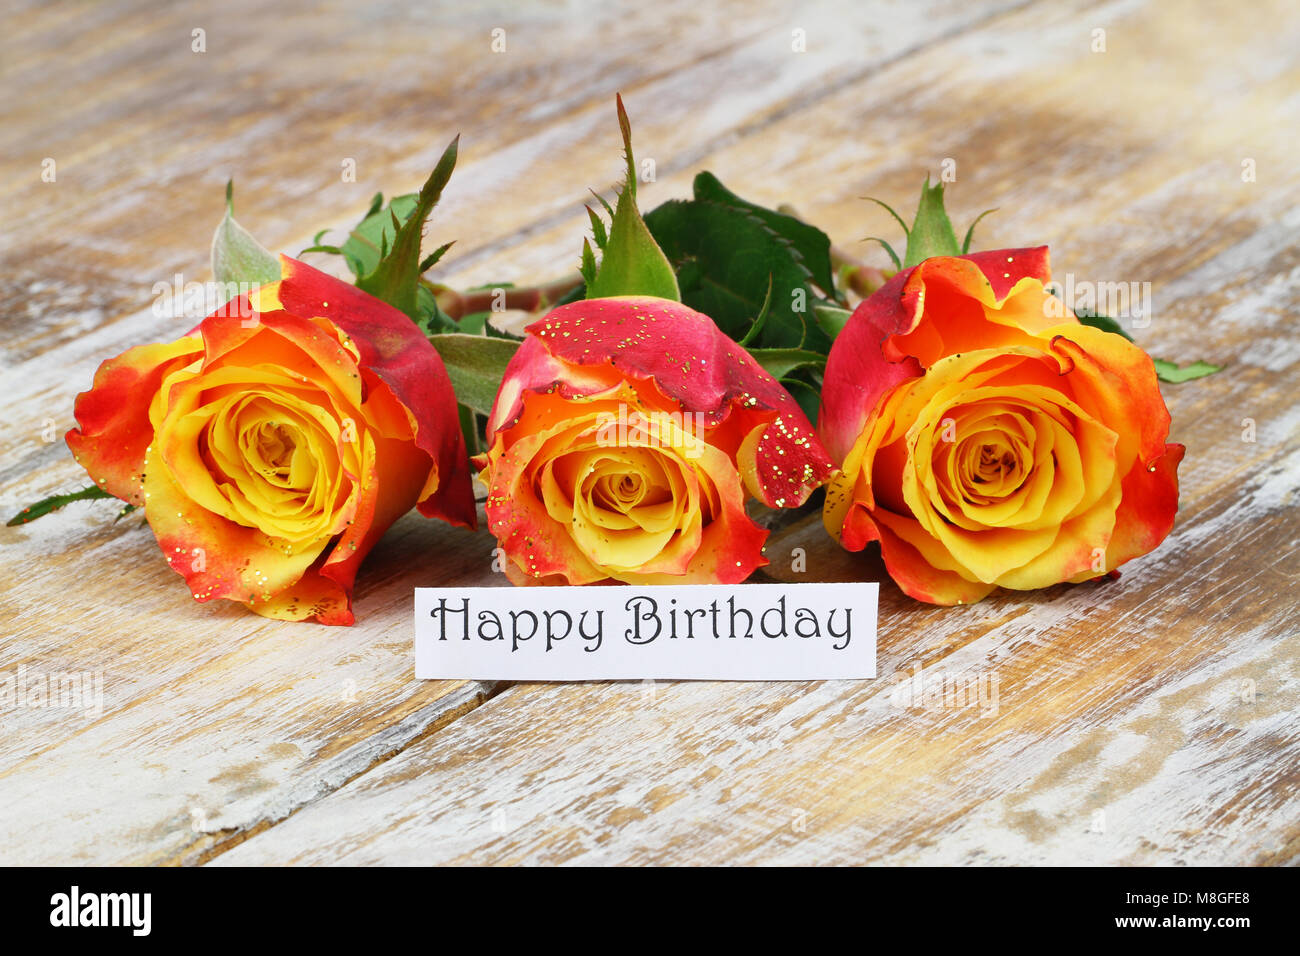 Happy Birthday Card With Three Red And Yellow Roses With Glitter On